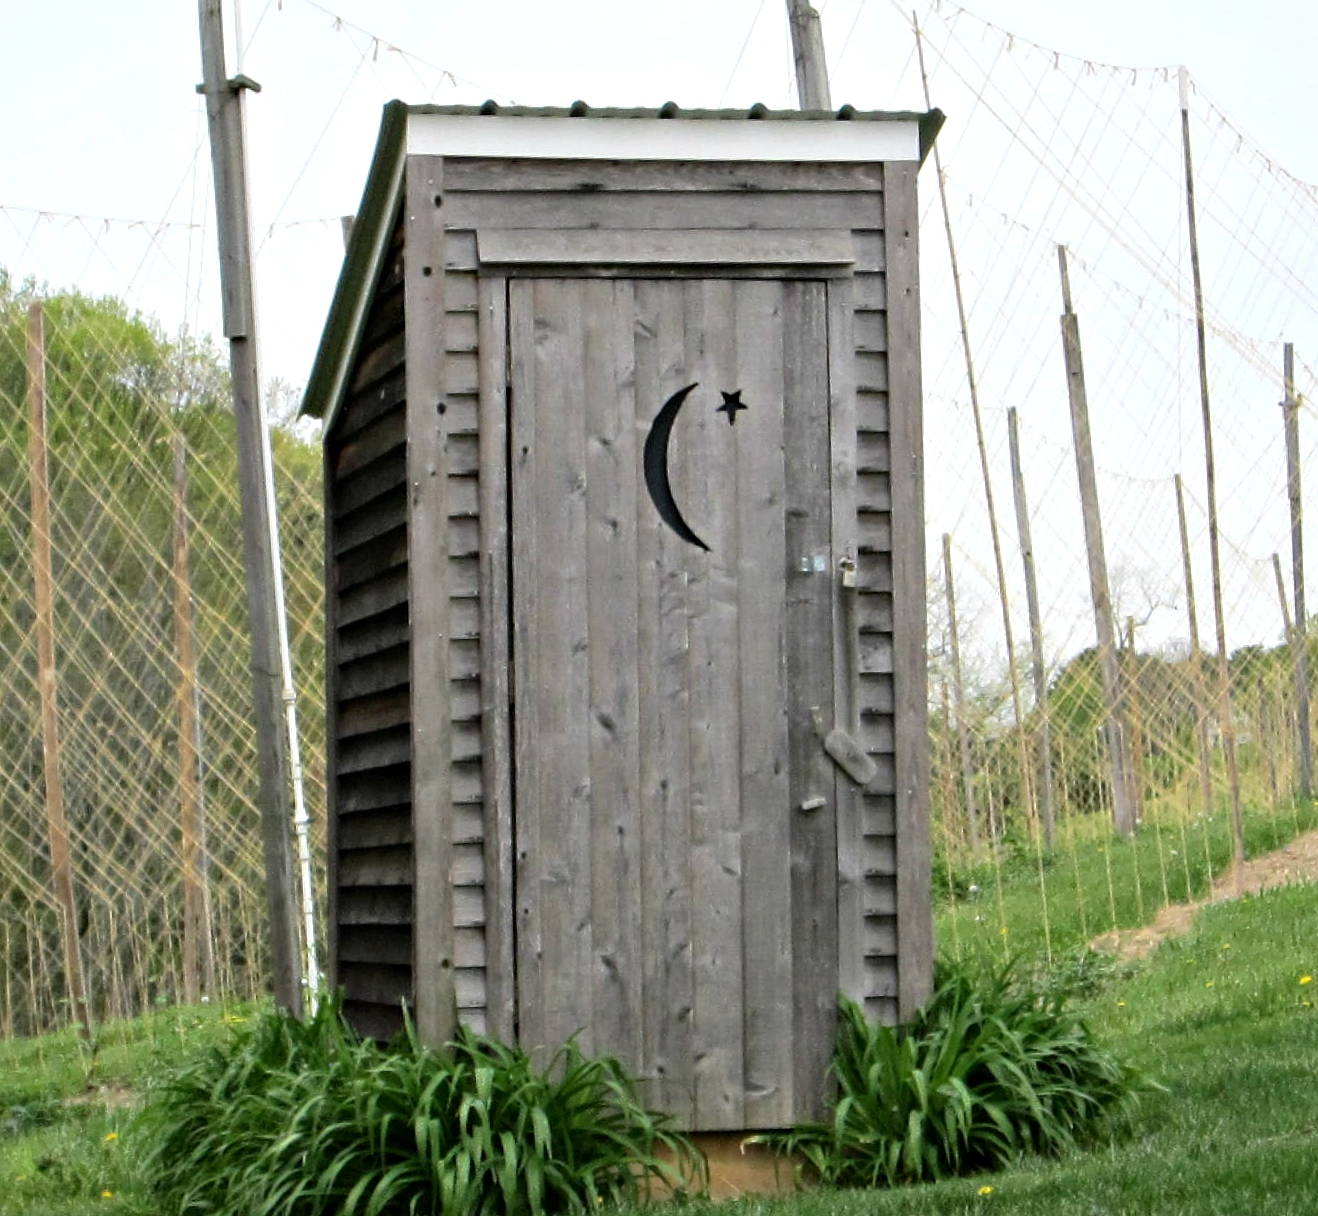 Outhouse, Ruhlman Brewery, Hampstead, MD USA IMG 4022 Photograph by Dolores Kelley  Roy and Dolores Kelley Photographs